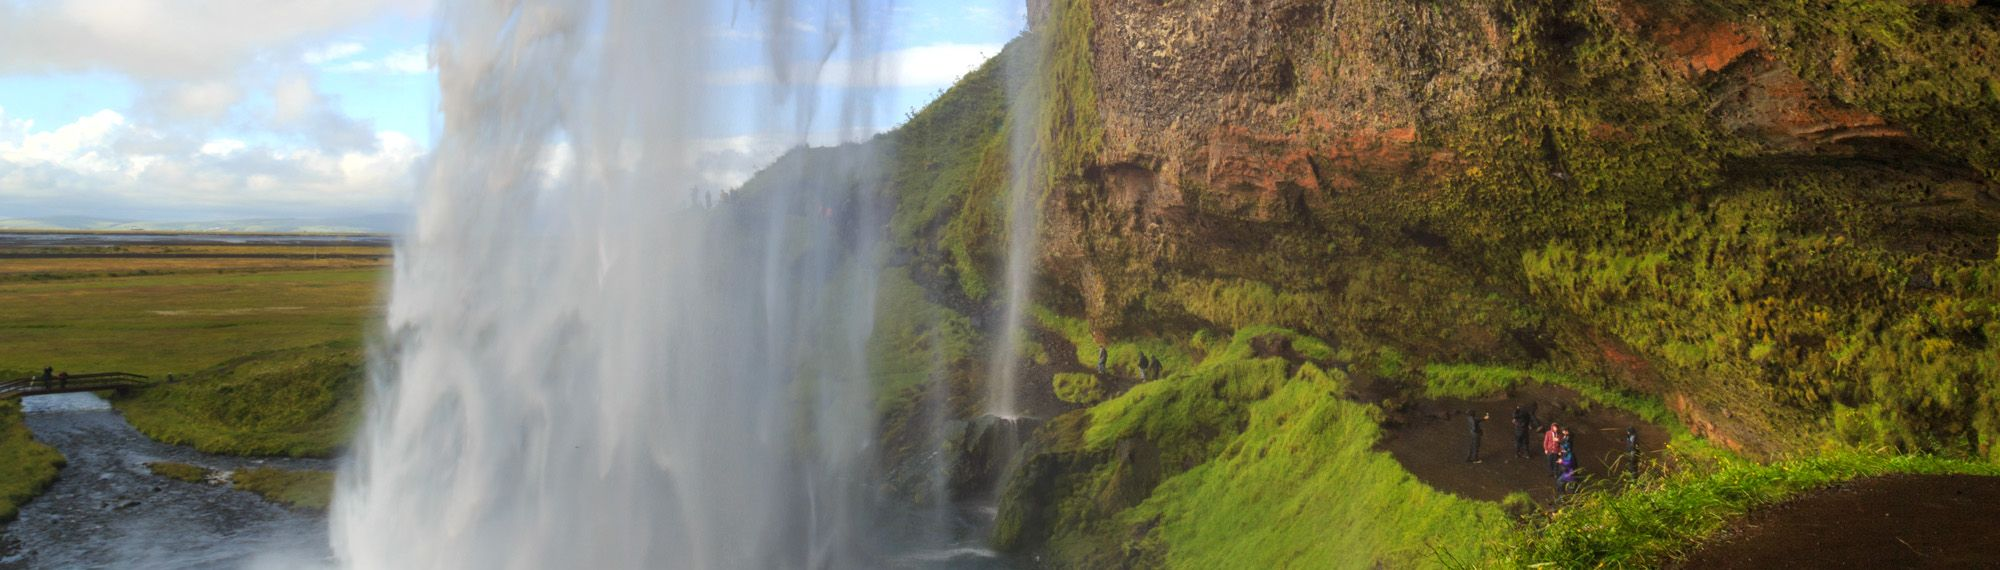 Seljalandsfoss-waterfall-South-Iceland